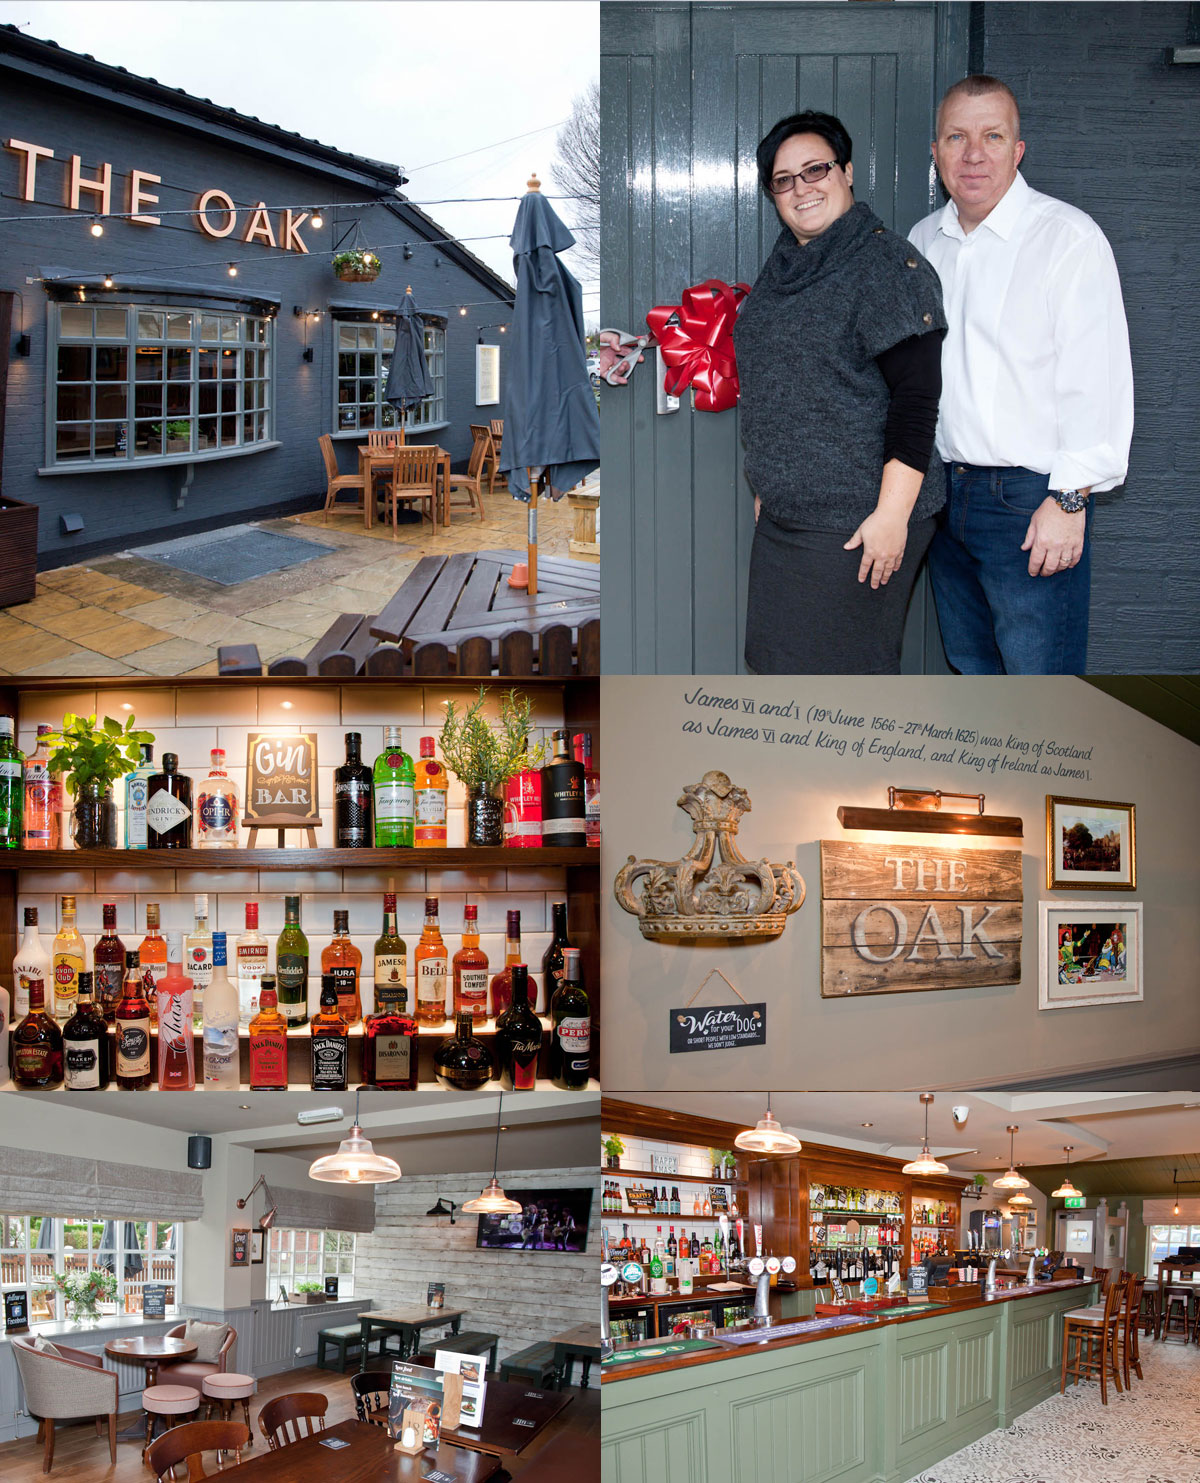 The Oak, a great looking local pub